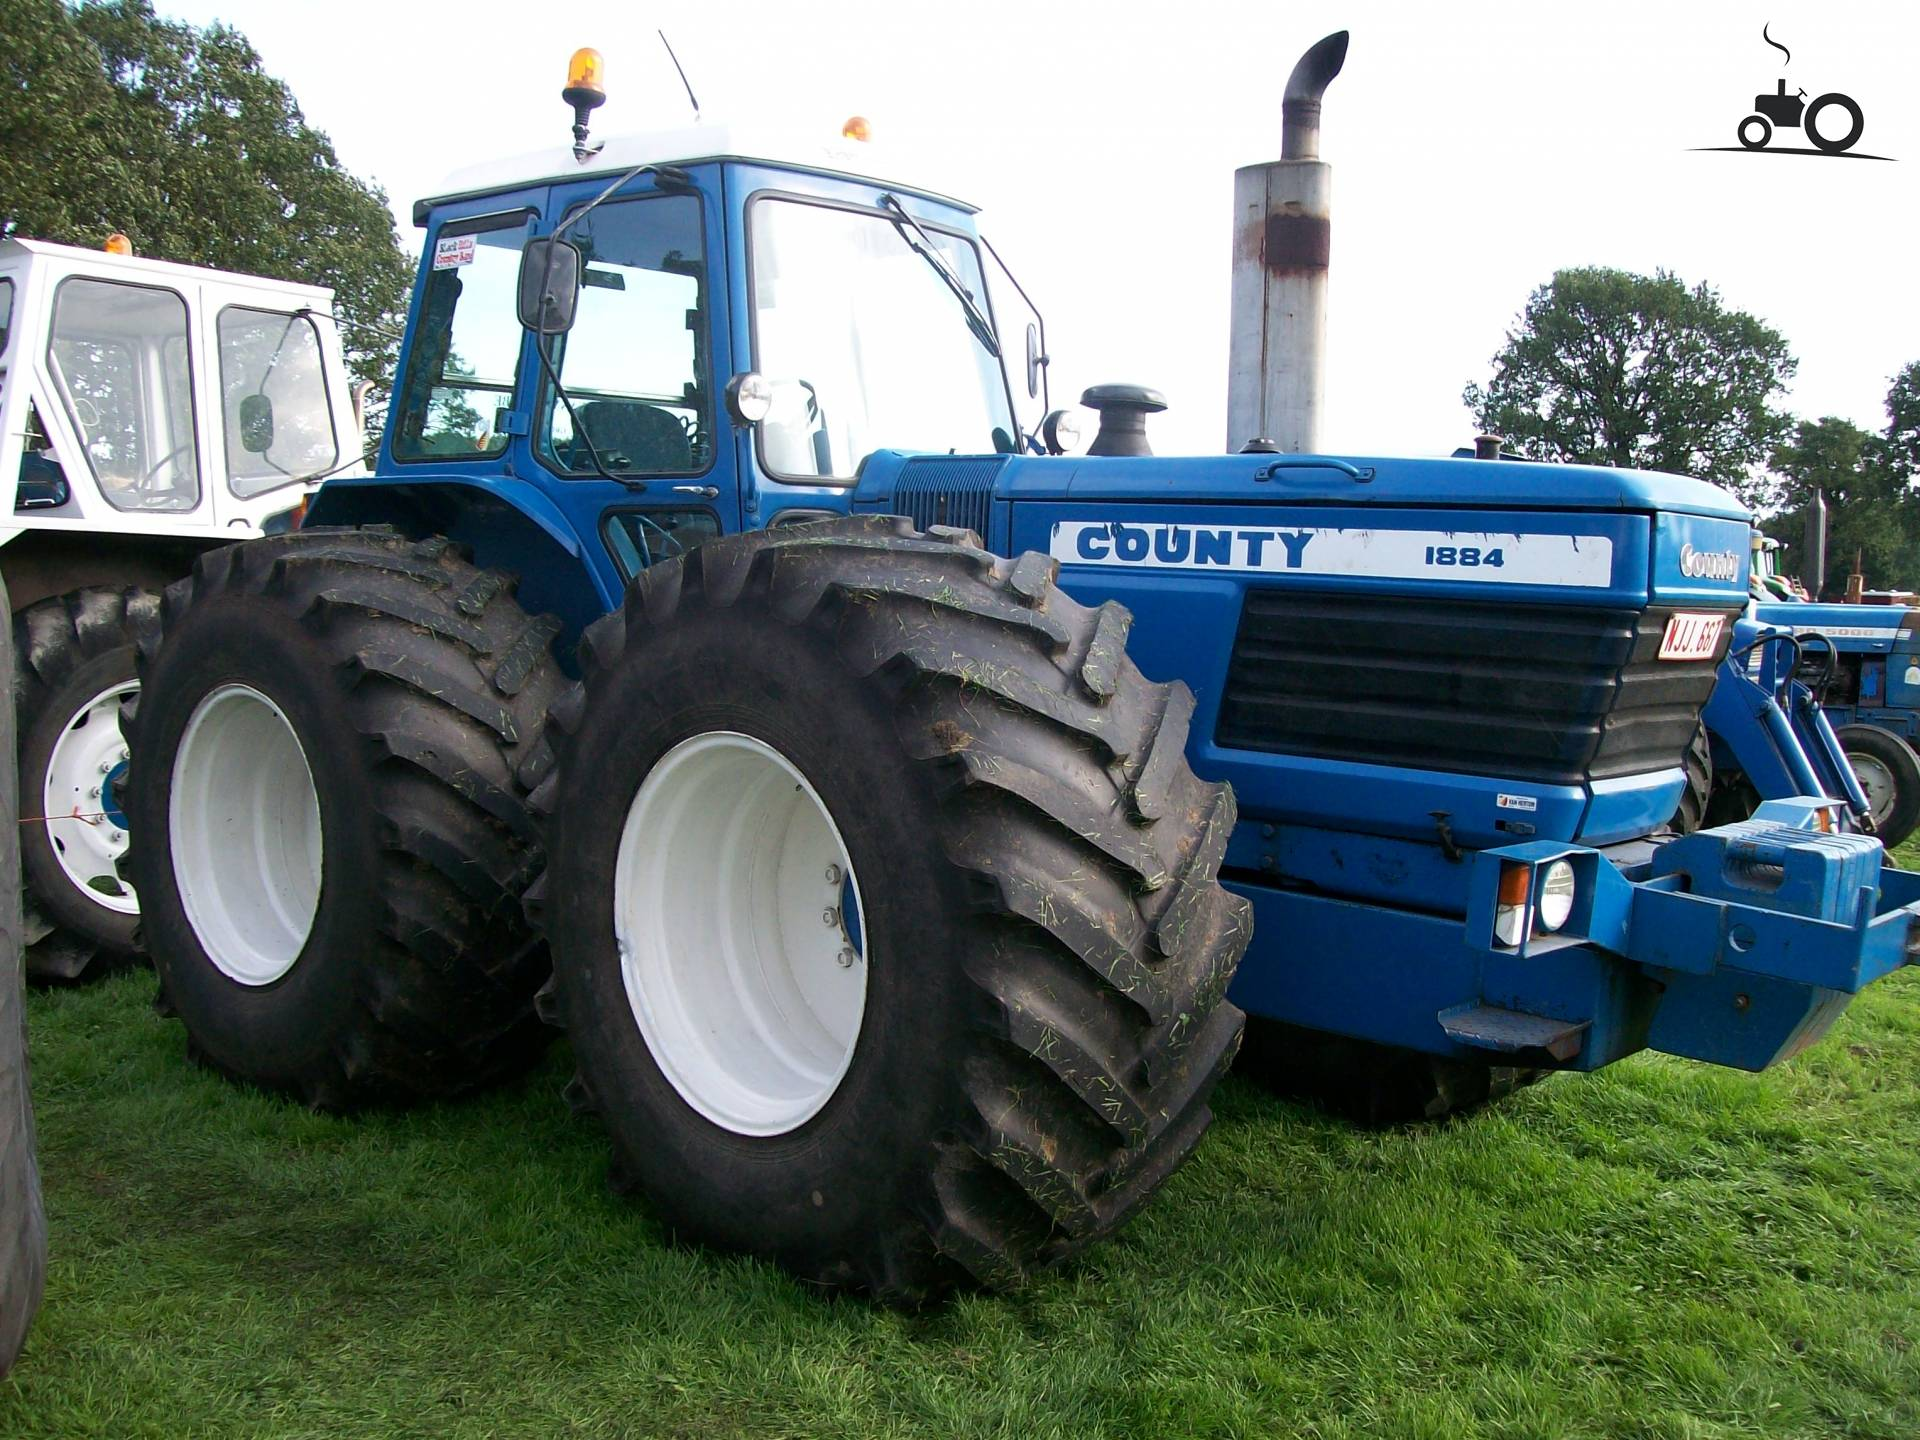 Ford County Tractors For Sale In Ireland